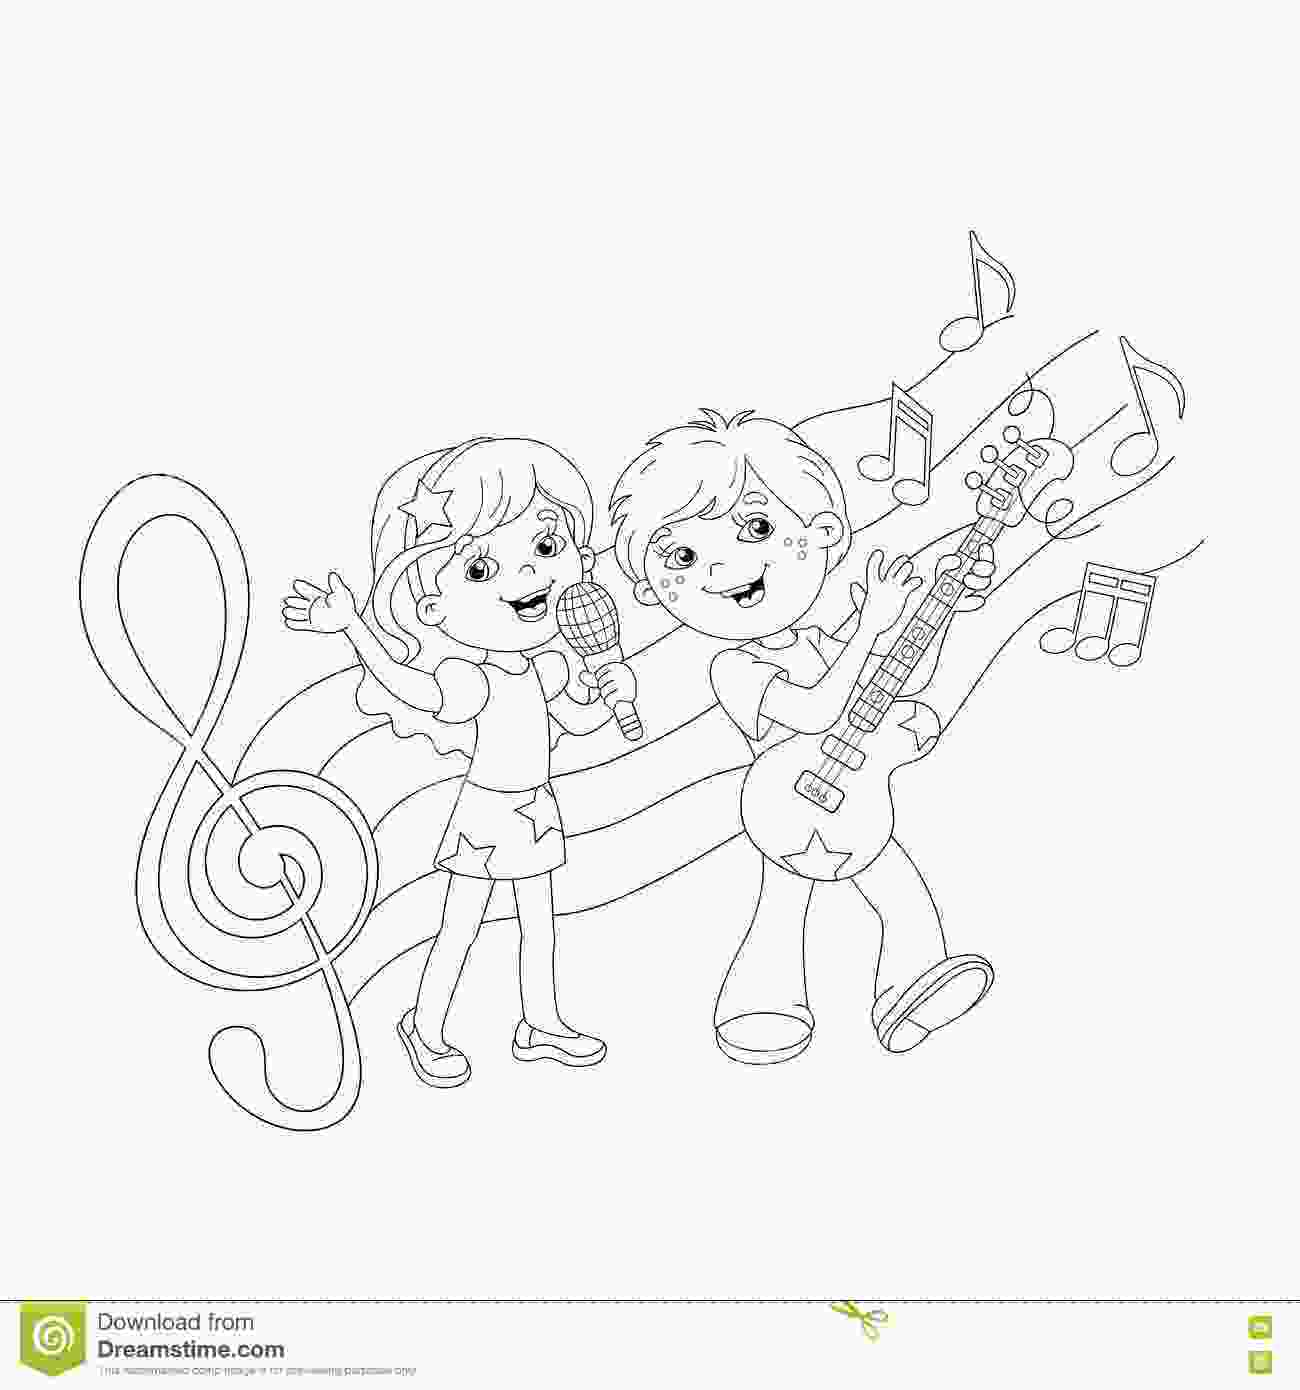 coloring music for kids coloring page outline of boy and girl singing a song